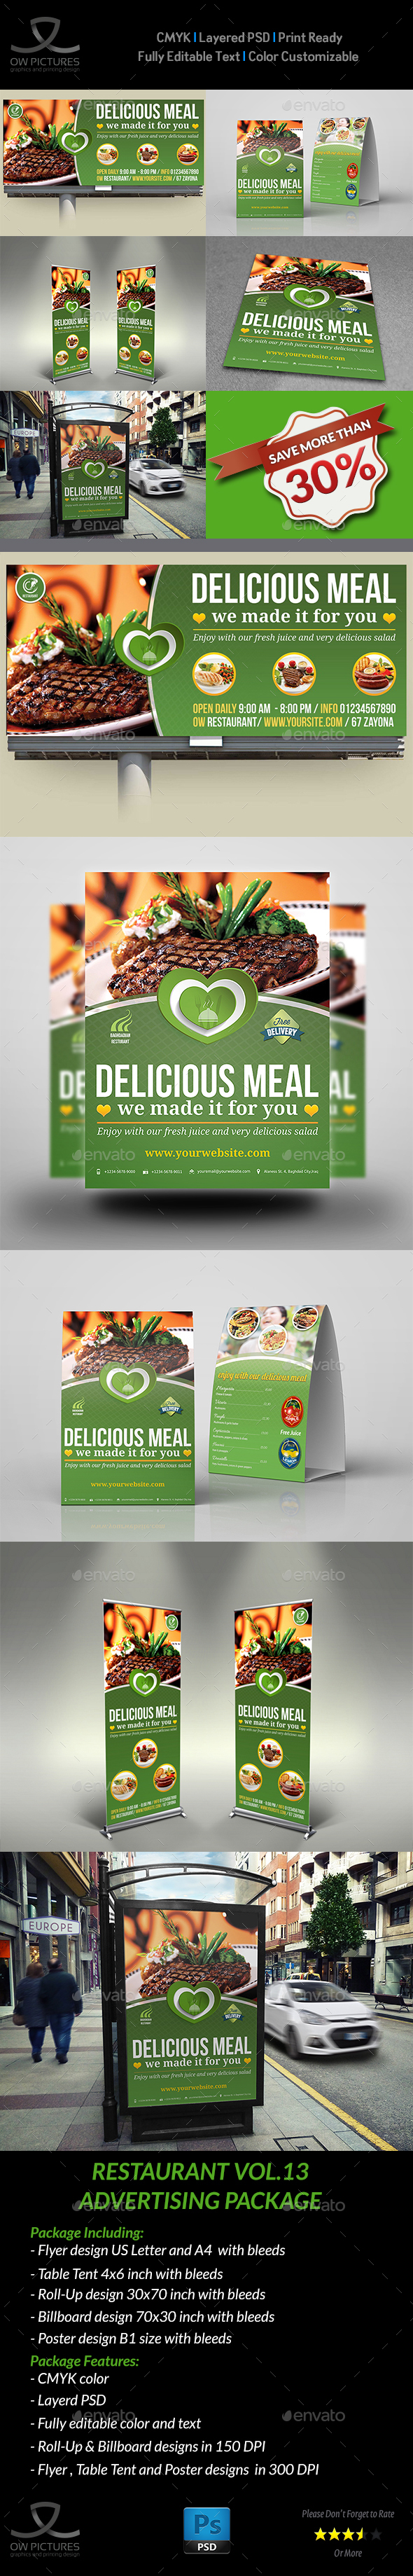 Restaurant Advertising Bundle Vol13